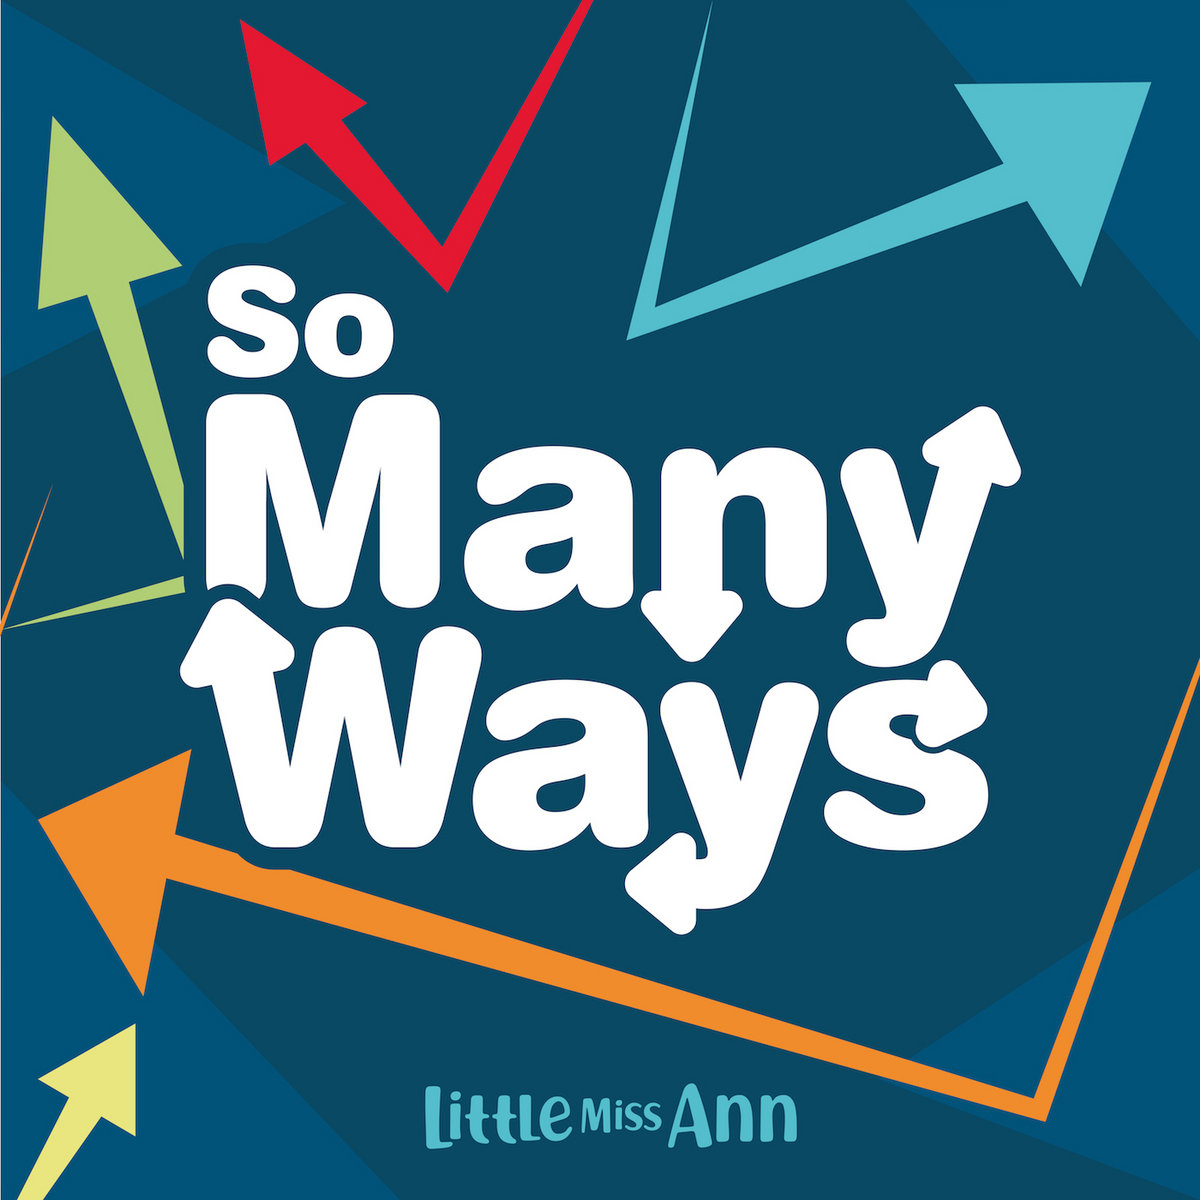 So Many Ways by Little Miss Ann